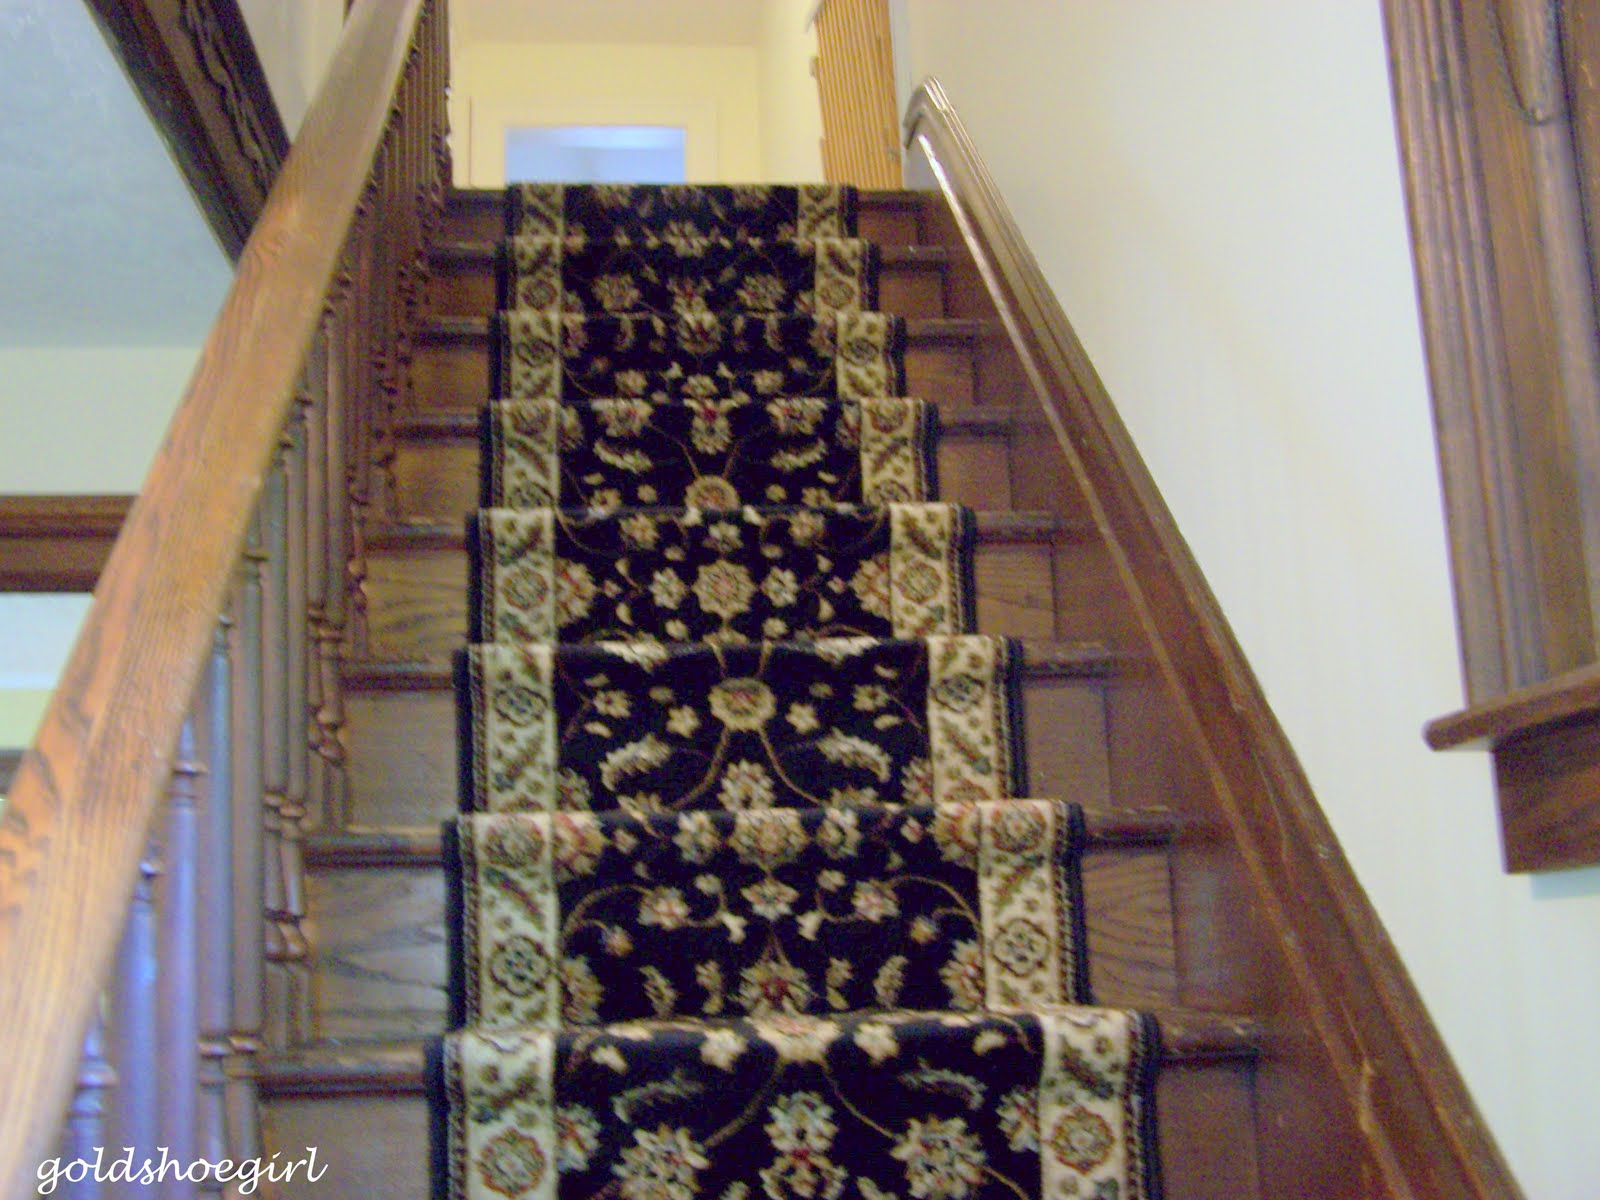 gold shoe girl installing a stair runner rh goldshoegirl com